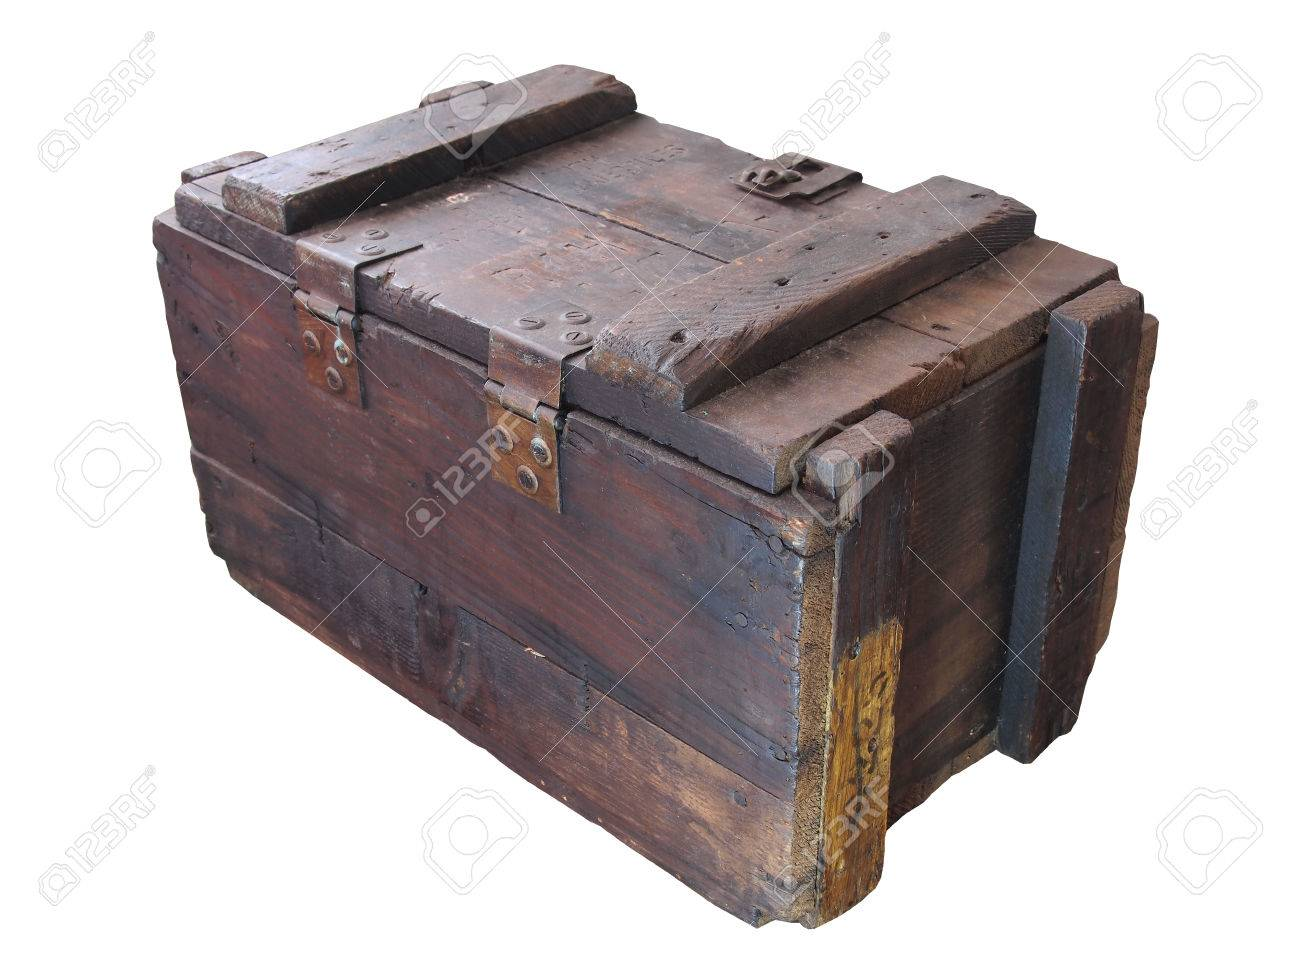 Military Wooden Crate Old Wooden Crate Isolated White